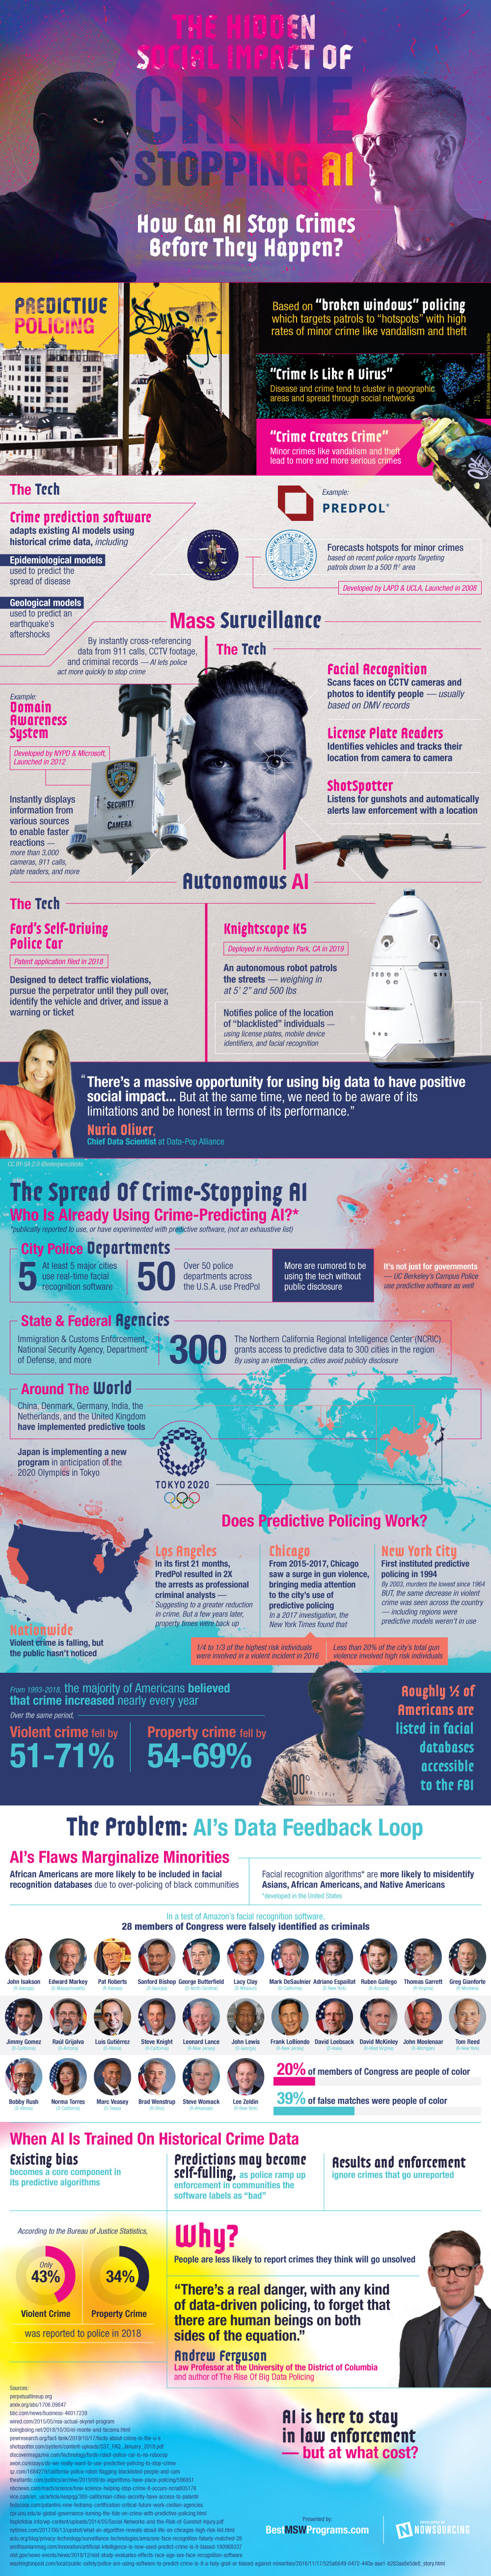 The Impact Of Artificial Intelligence (AI) On Crime - Infographic